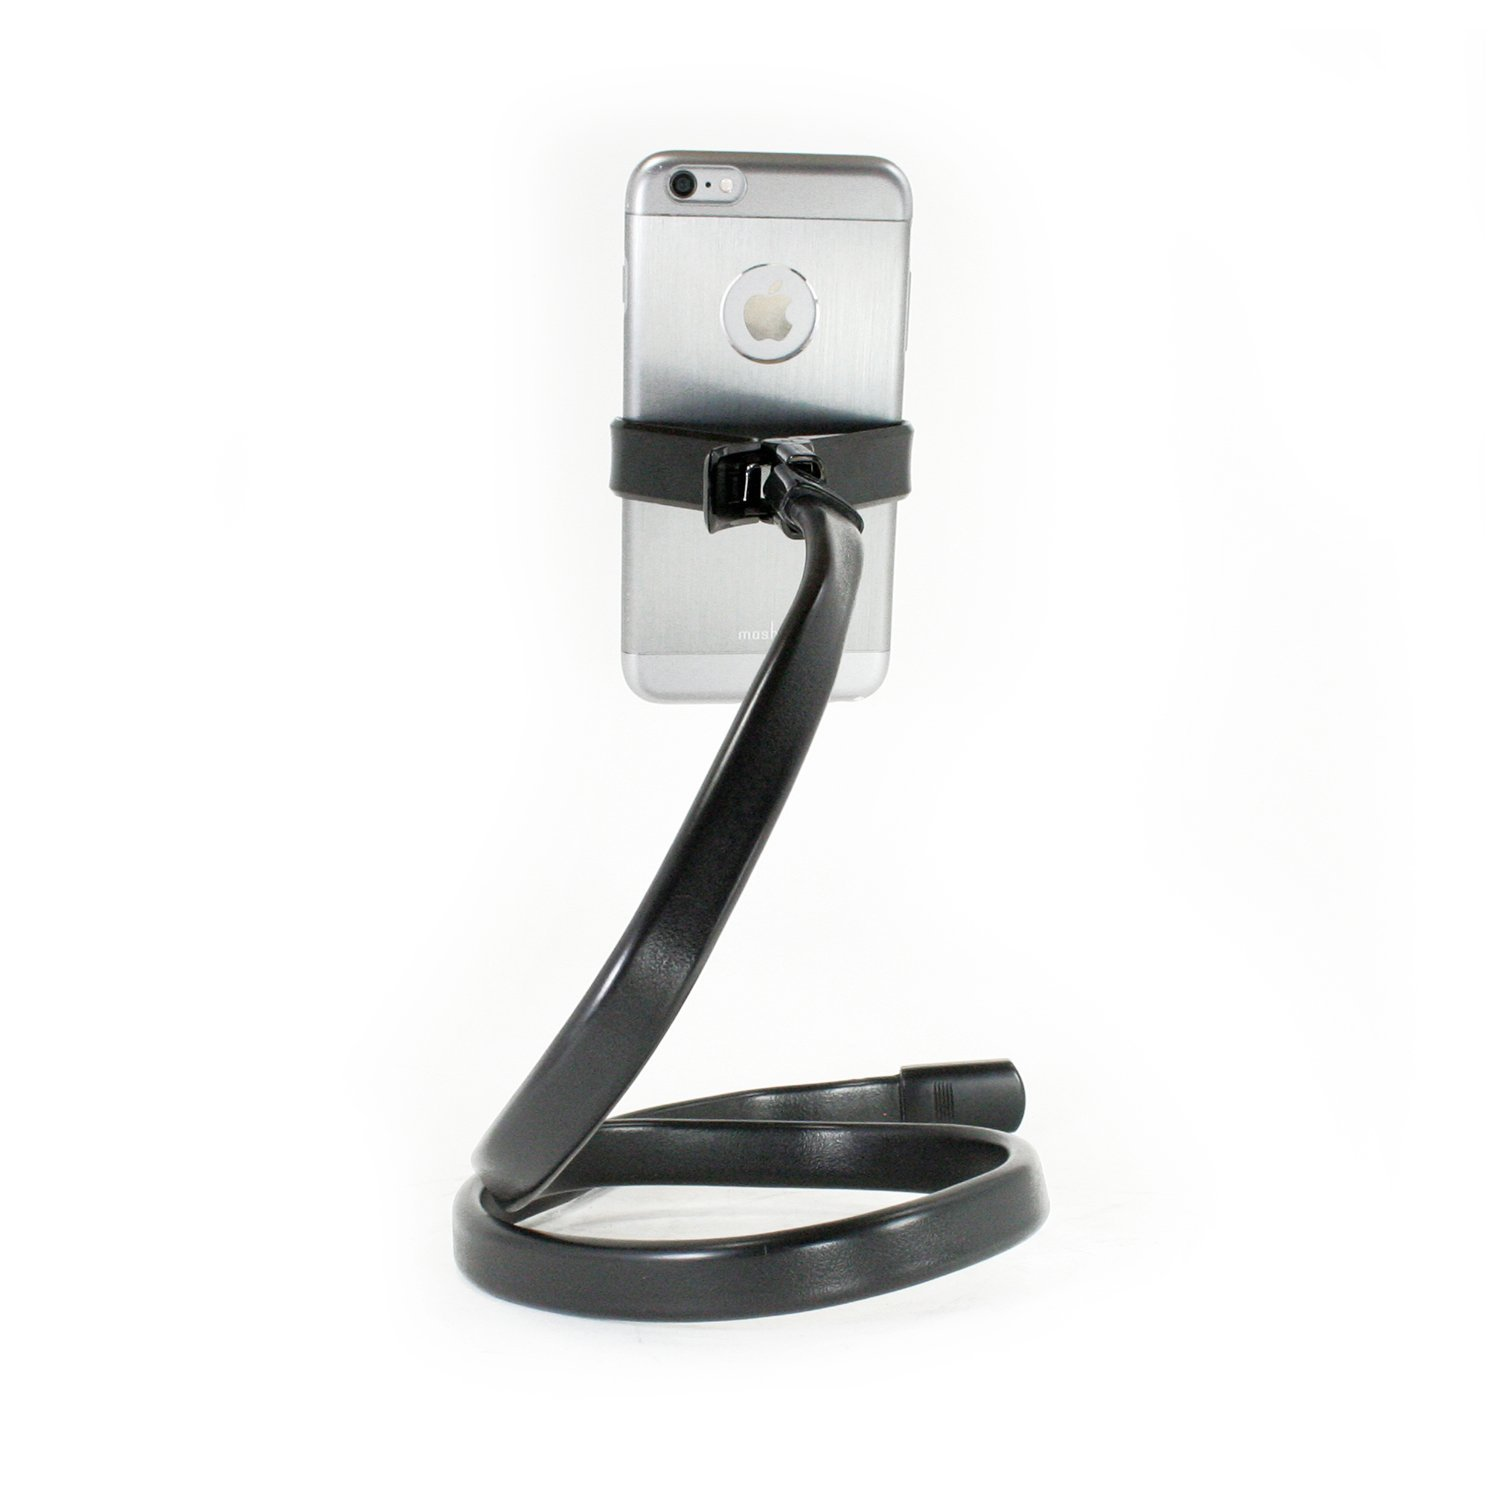 Livestream - Flexible Phone Holder Clamp Stand with Rotatable Smartphone Mount. Use for Video Recording, Pictures, or Live Streaming. Clamp to Desk, Table, or Wear Around Neck. (Black)